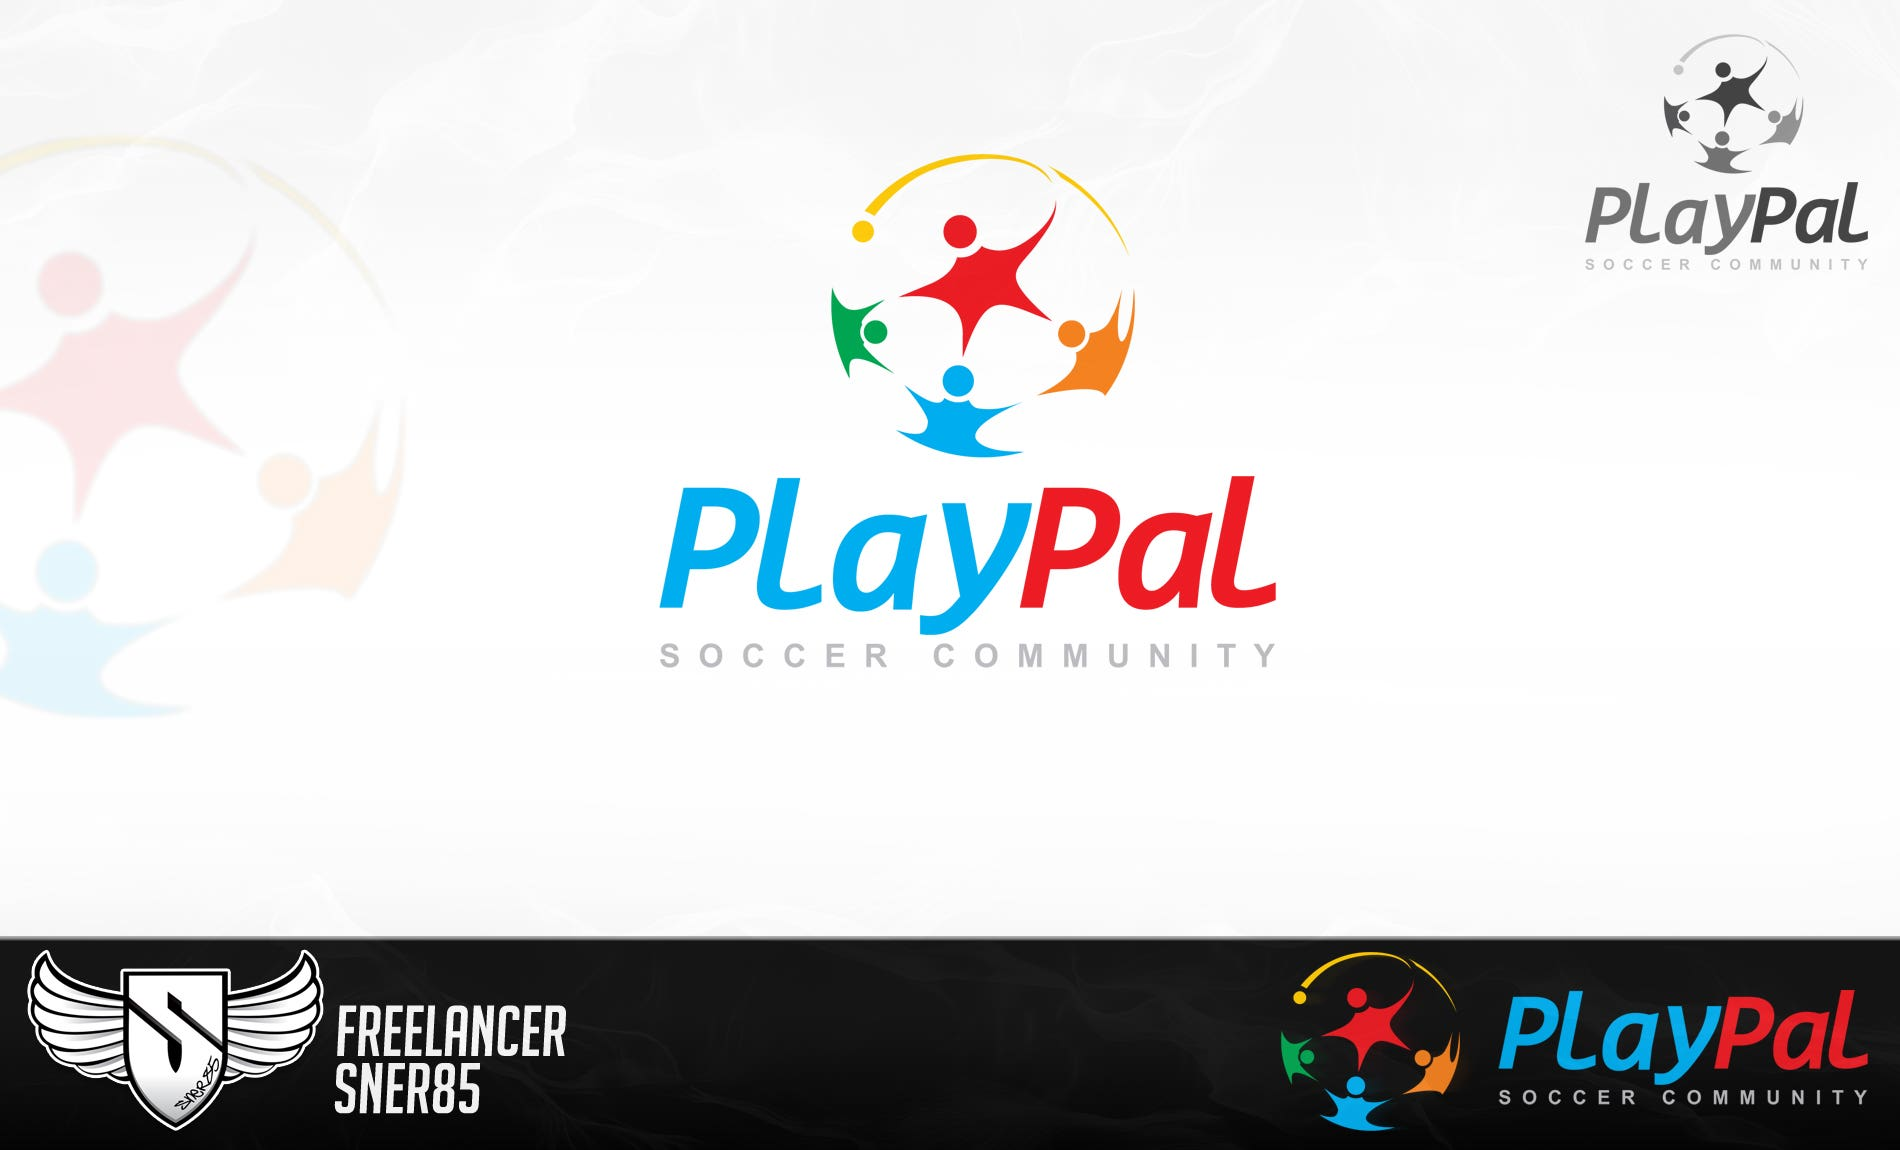 Logo design for PlayPal soccer community